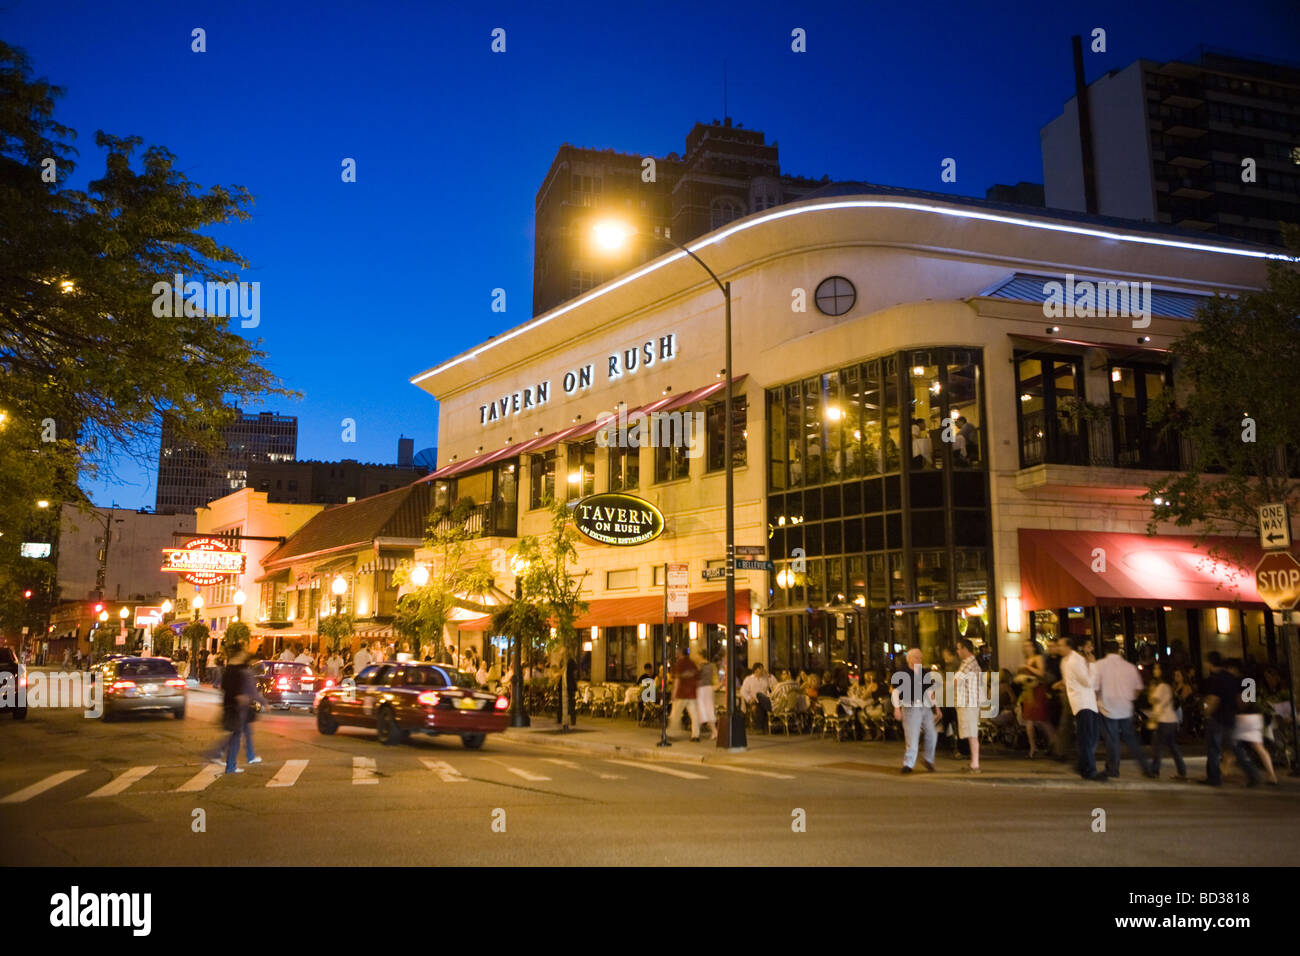 Nightlife on Rush Street part of Gold Coast Chicago Illinois - Stock Image